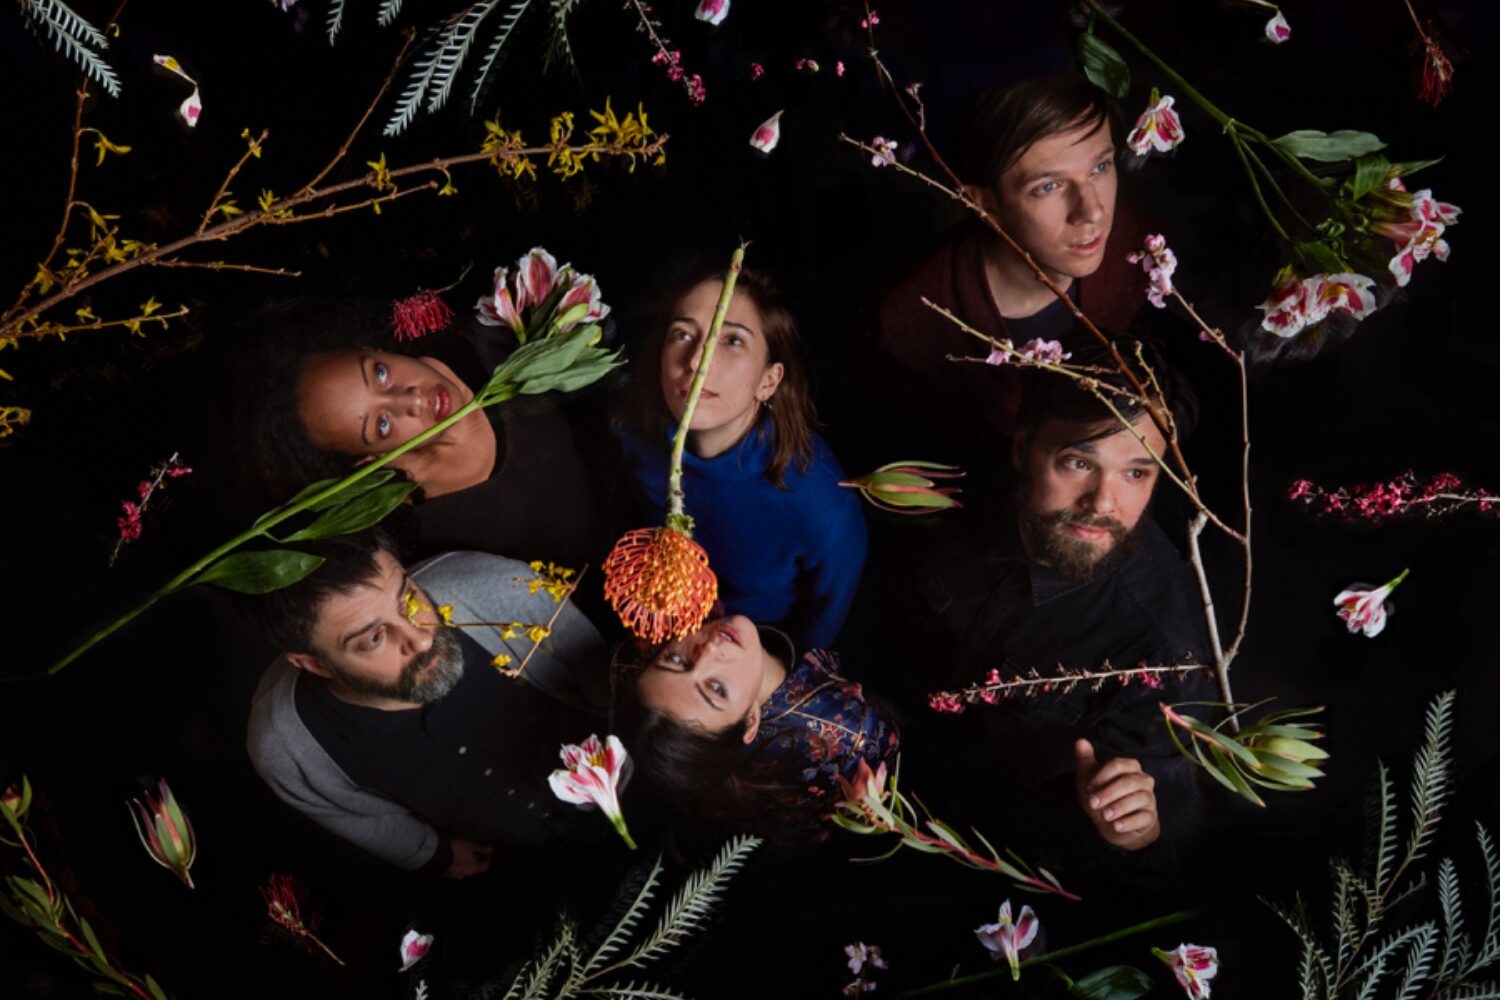 Dirty Projectors announce new album ft Haim, Rostam, Robin Pecknold (Fleet Foxes) and more